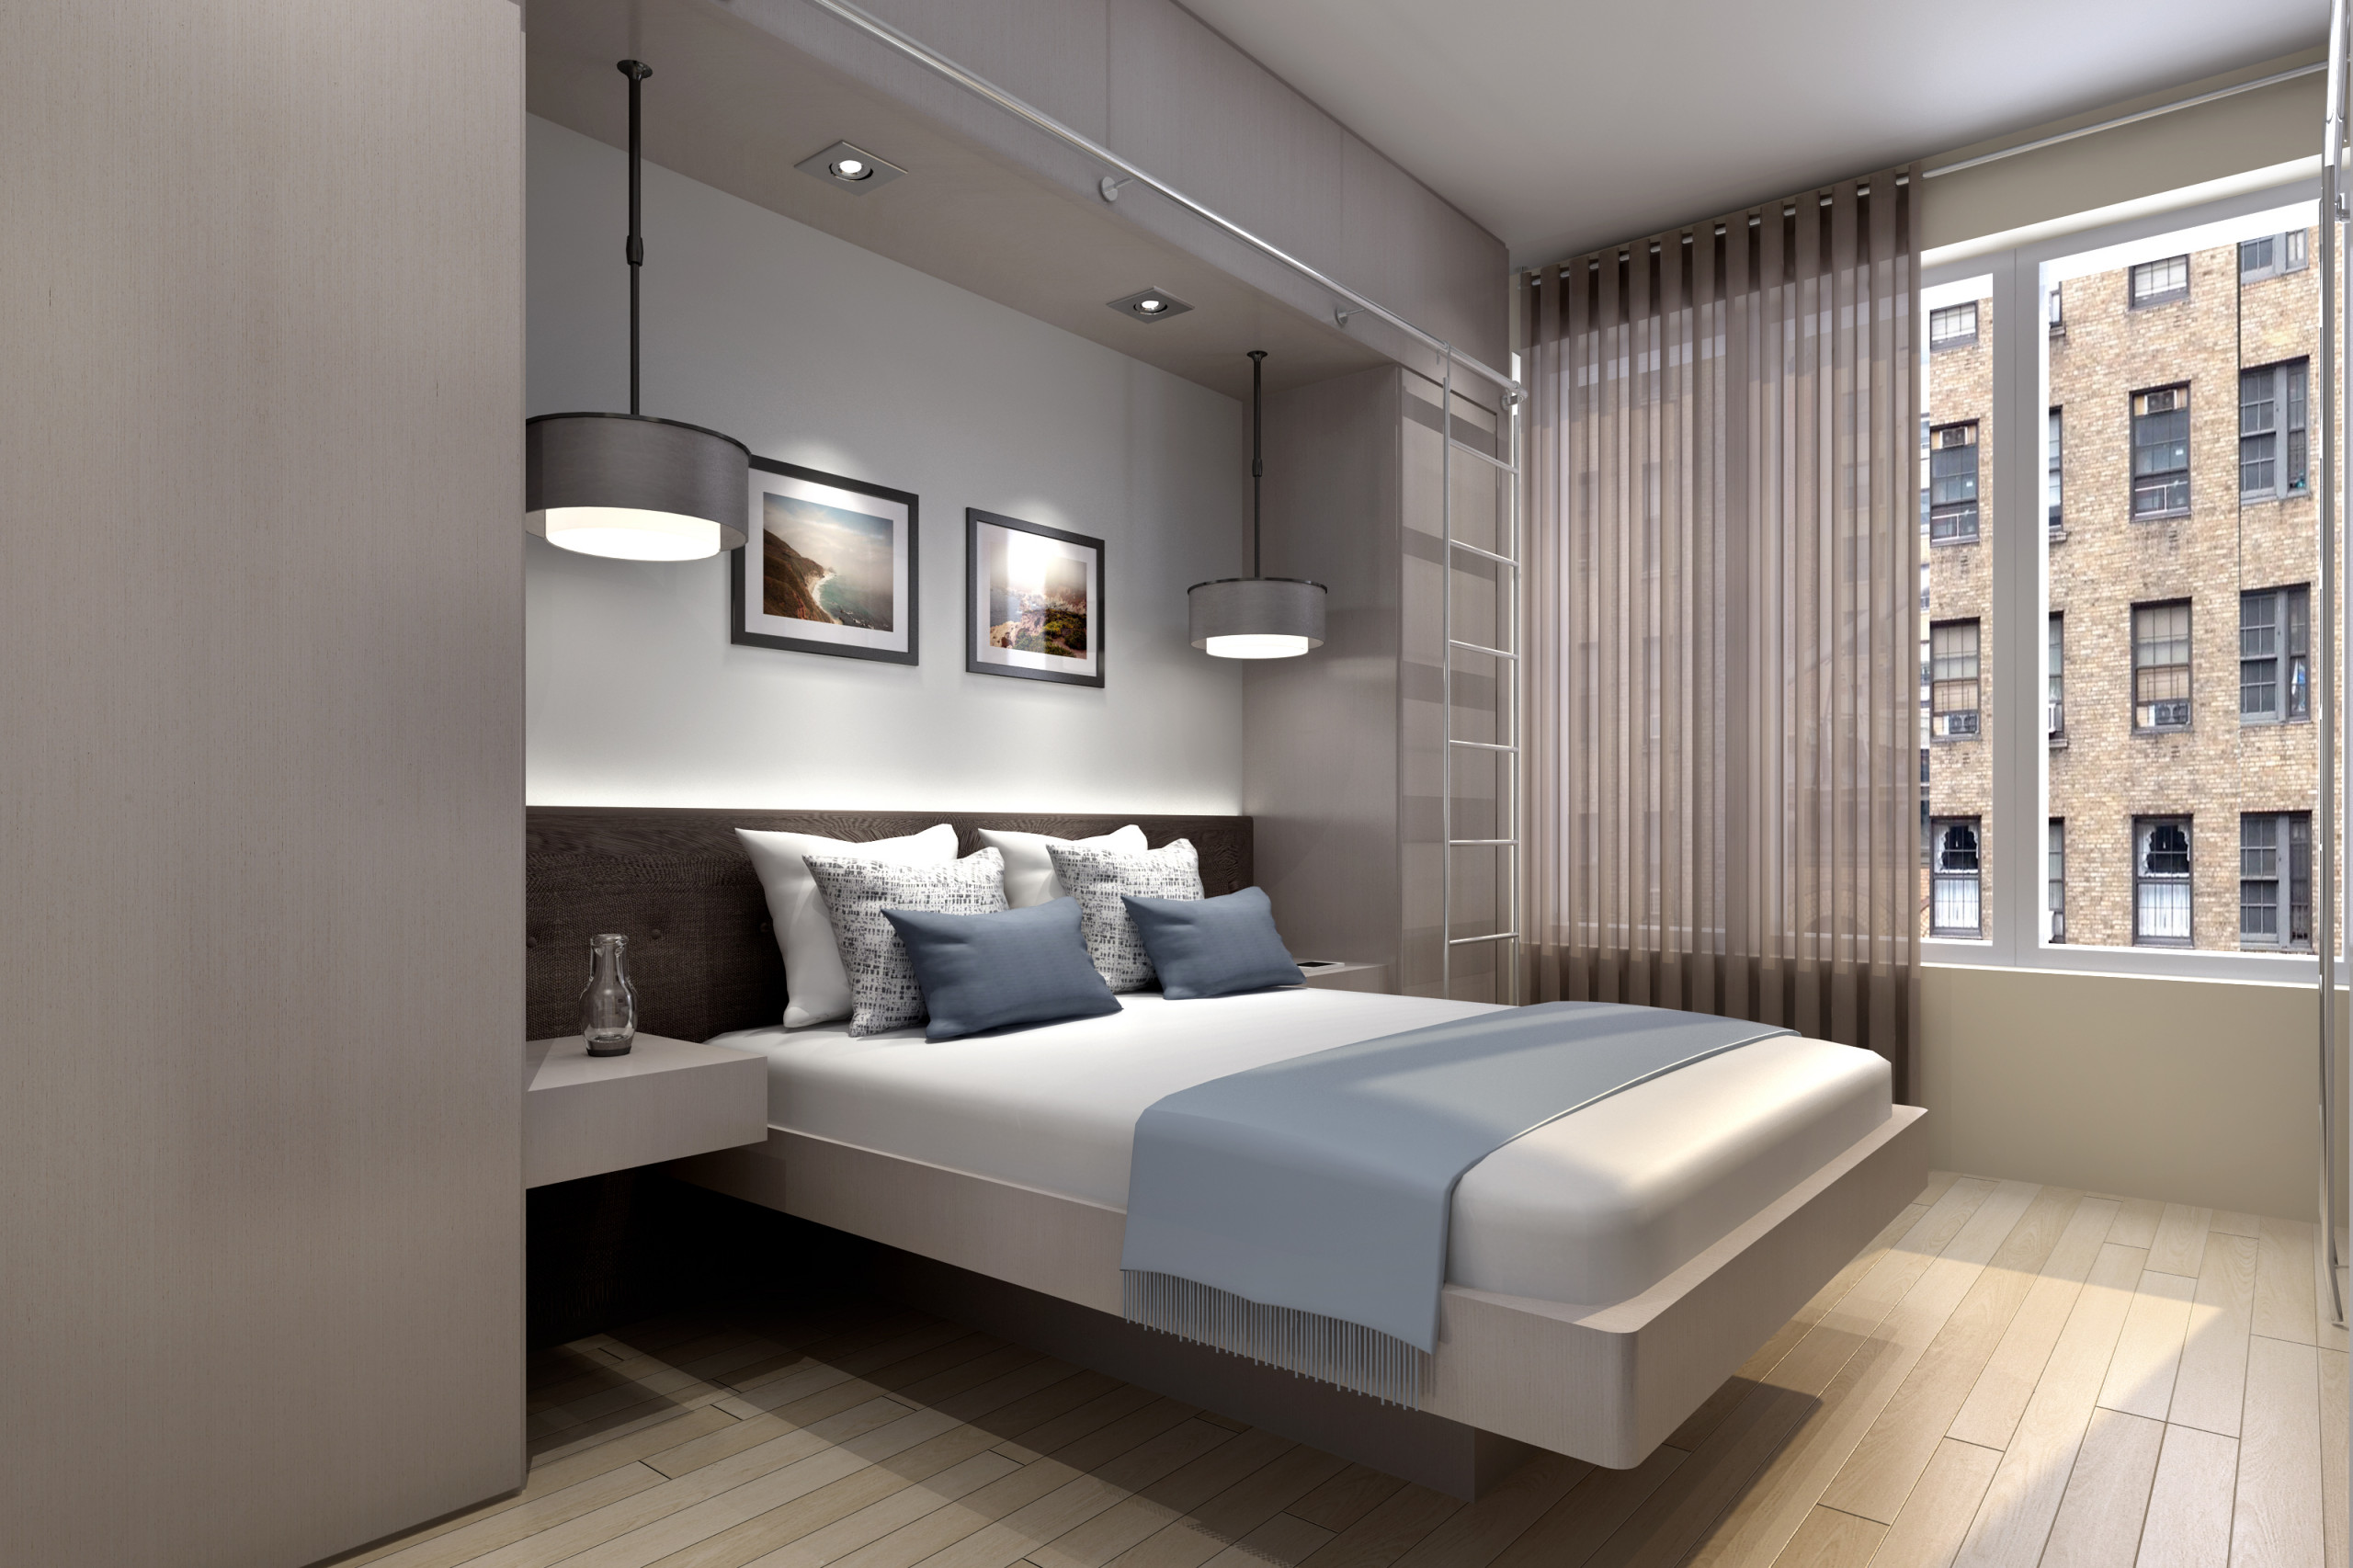 75 Beautiful Modern Bedroom Pictures Ideas April 2021 Houzz